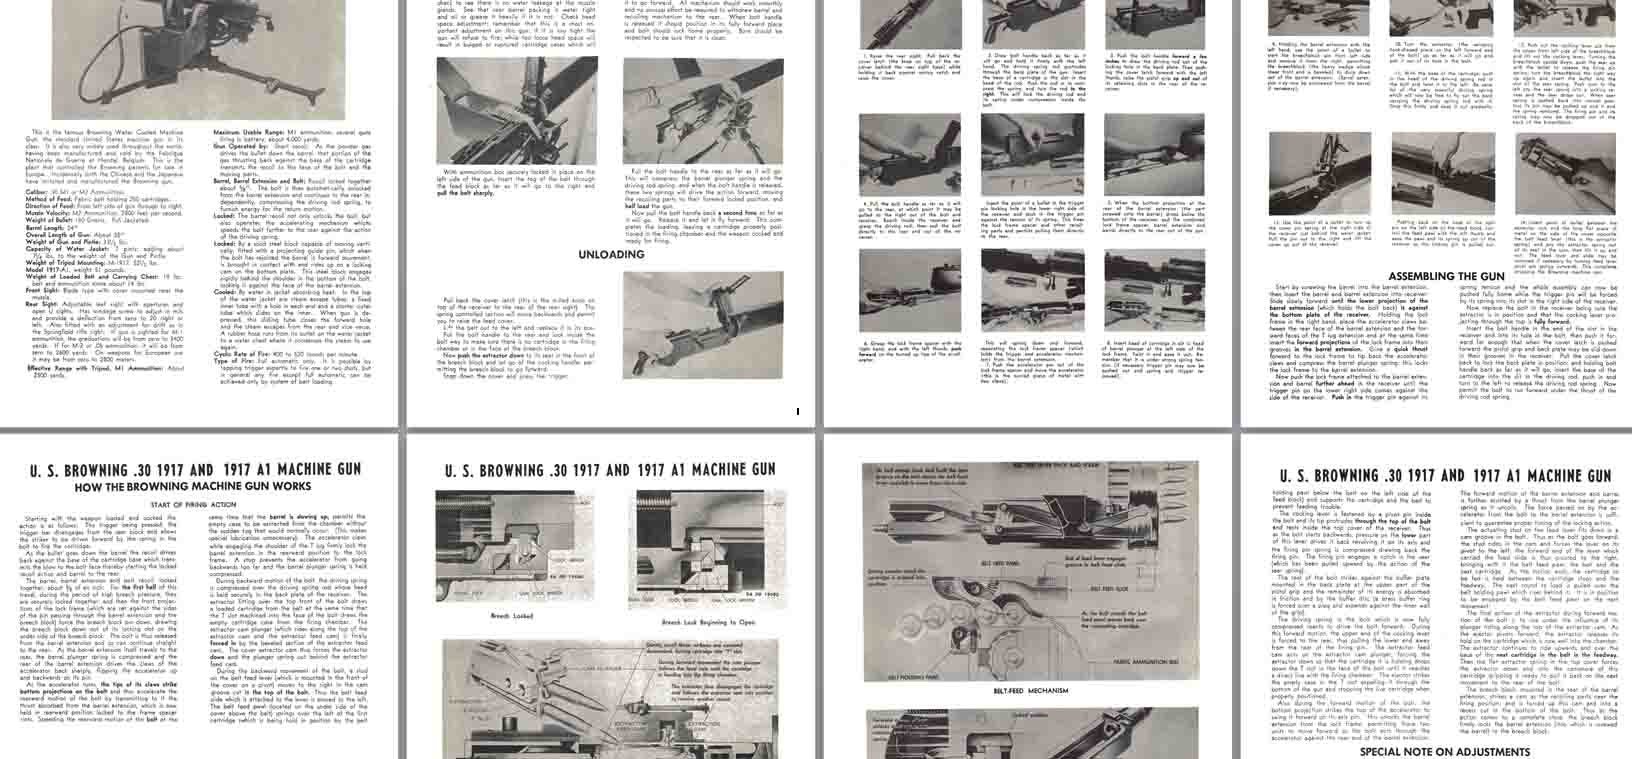 Browning 1917 & 1917A1 .30 Machine Gun Manual c1951